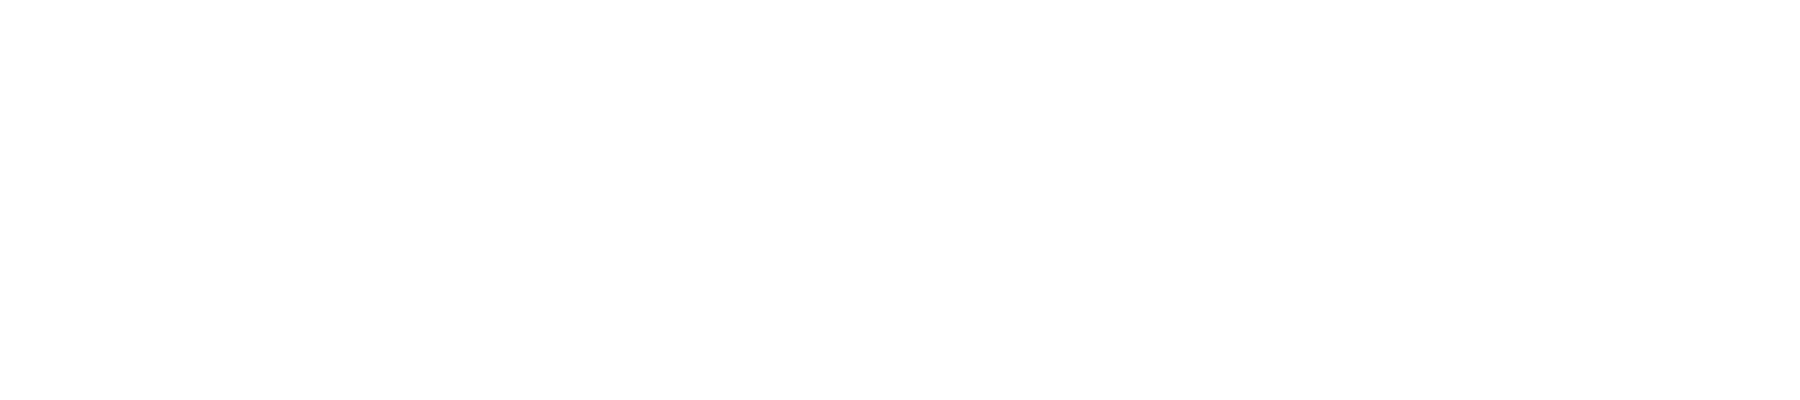 Psi Pi Group